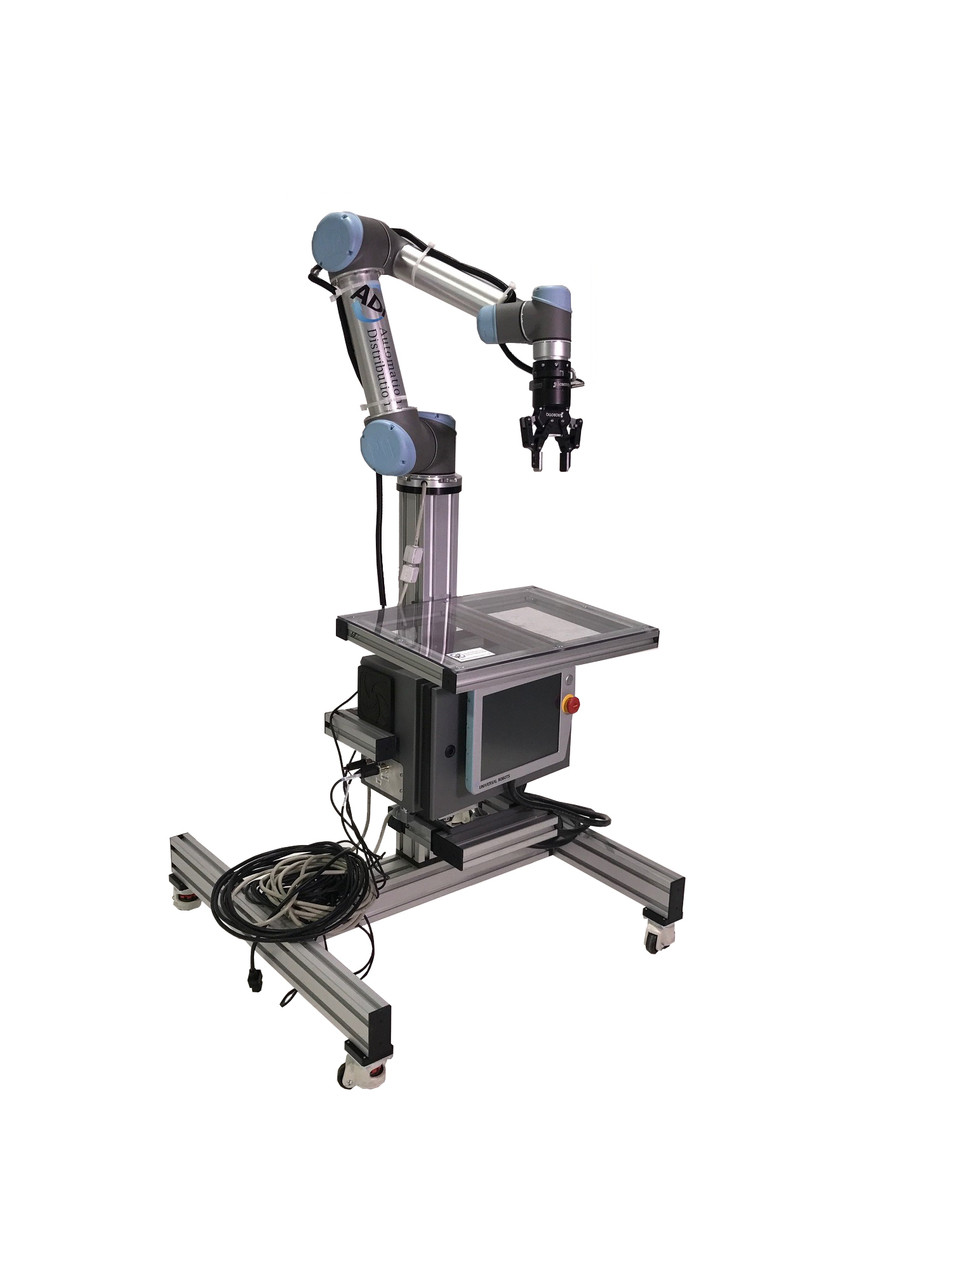 Universal Robots Turnkey Manufacturing Robot with Gripper